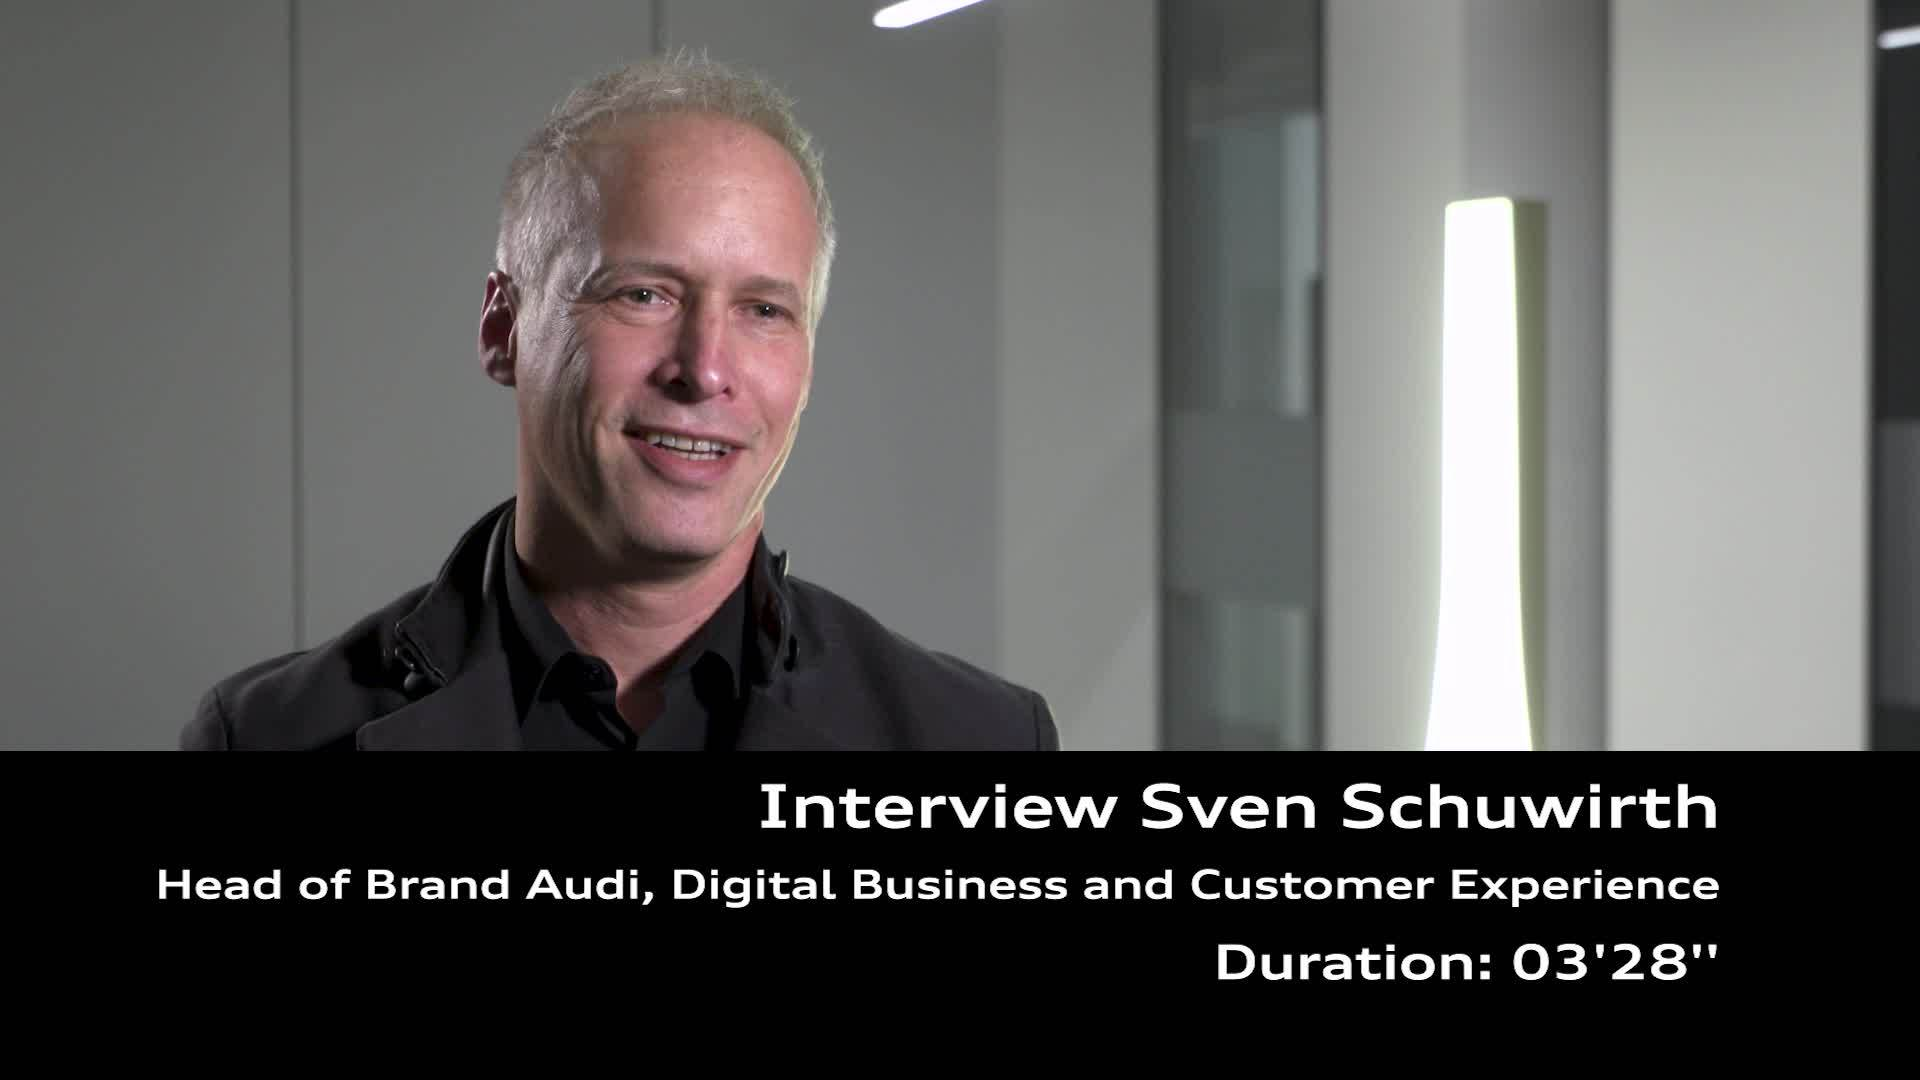 Footage Interview Sven Schuwirth about the Game Day spot